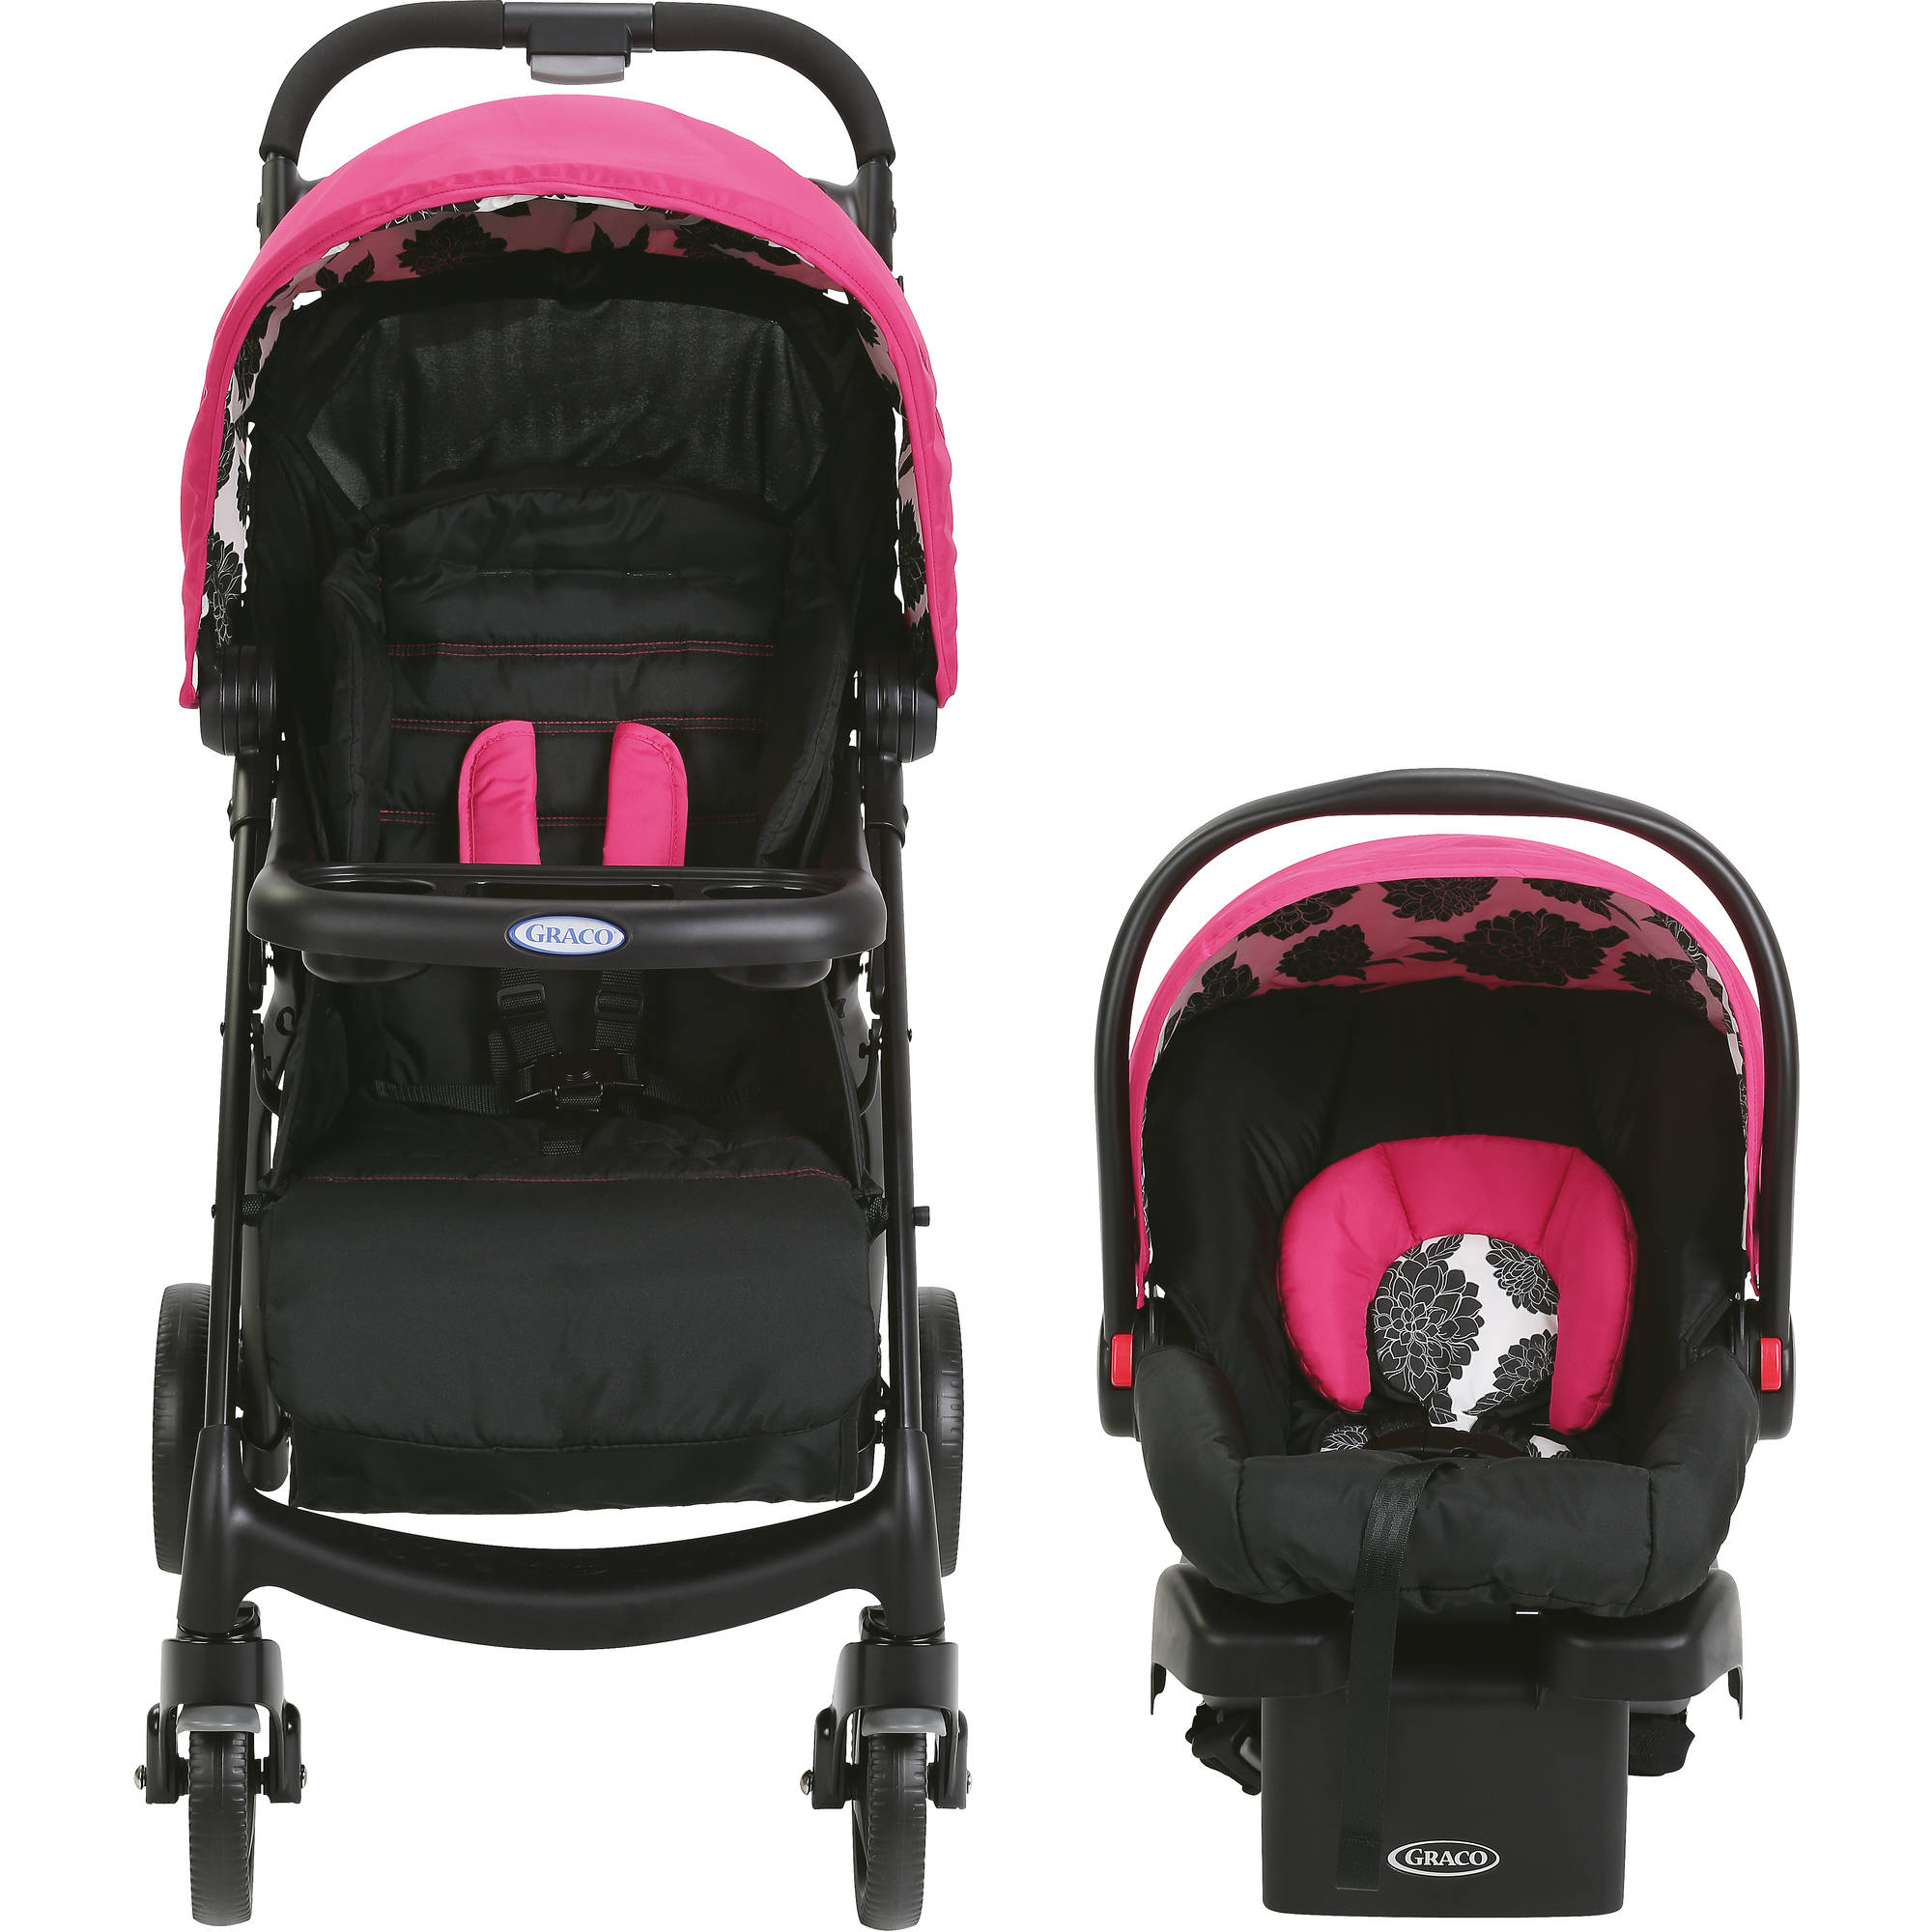 Graco Verb Click Connect Travel System Infant Car Seat Stroller Carrier Pink